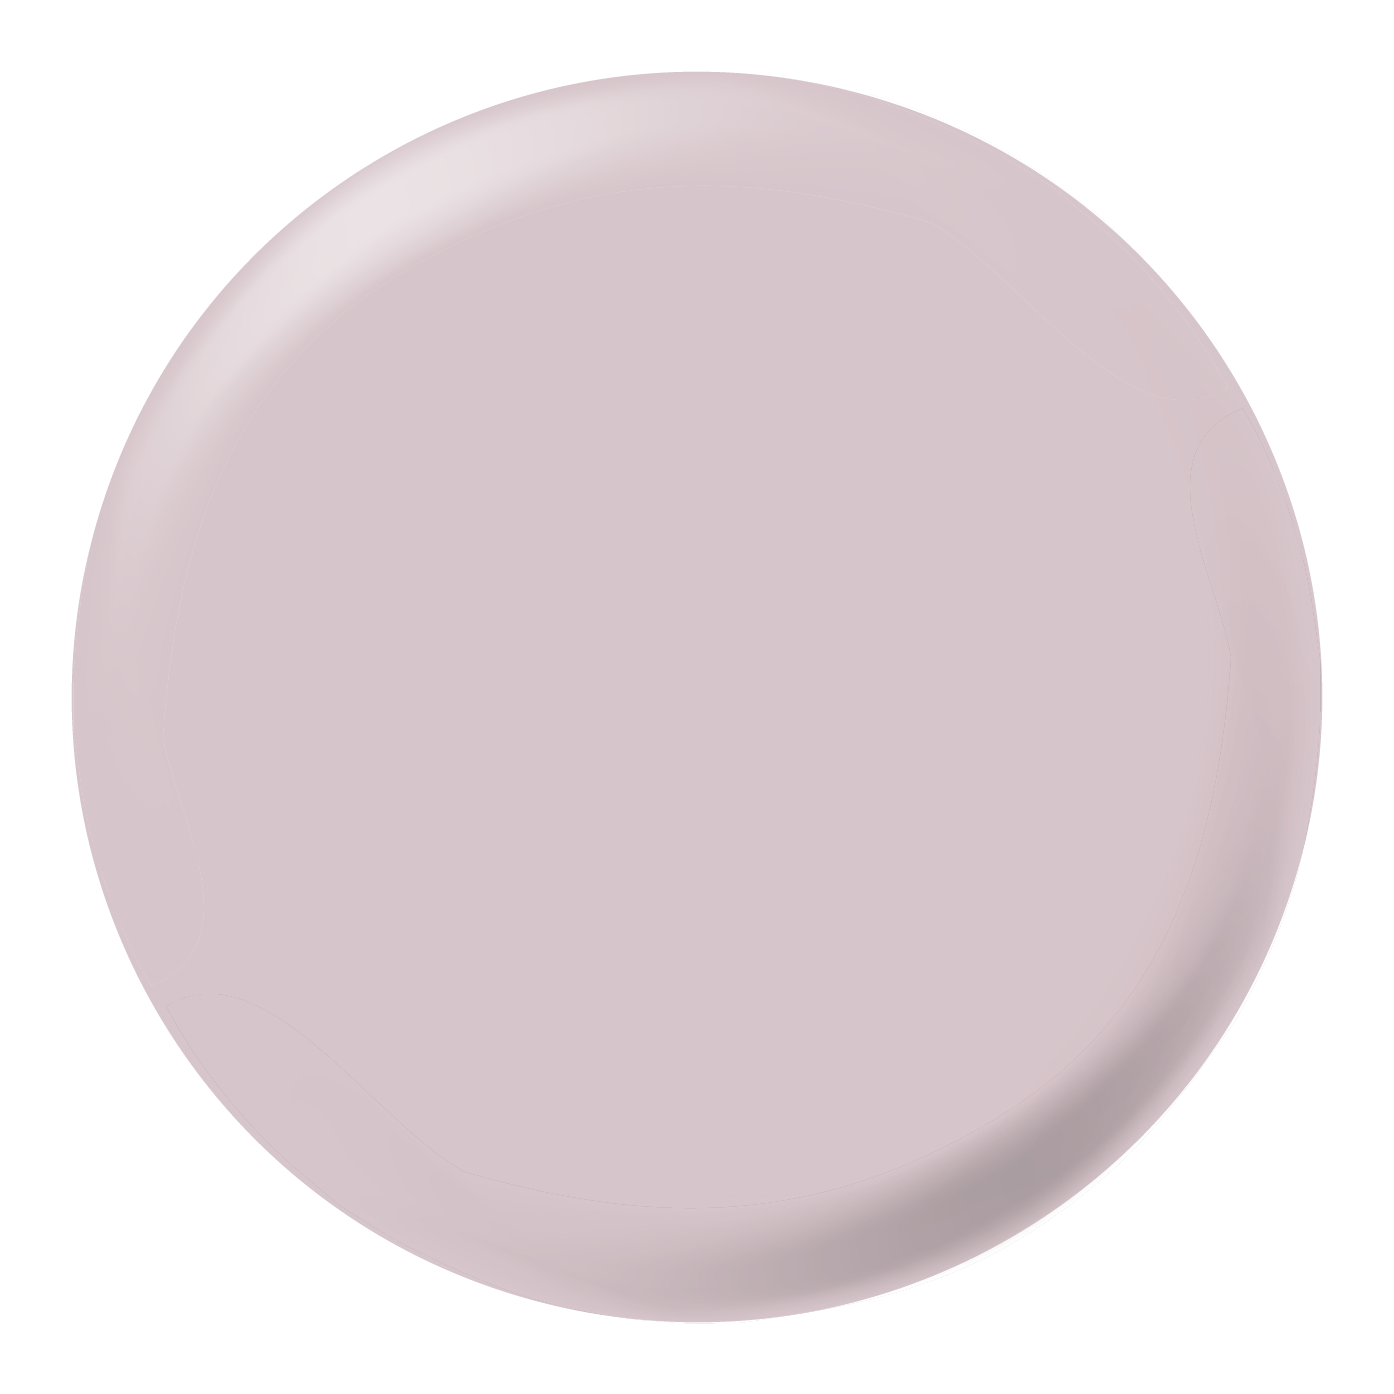 Odyssey Lilac 1218 is available at Harris Paints in the Caribbean.